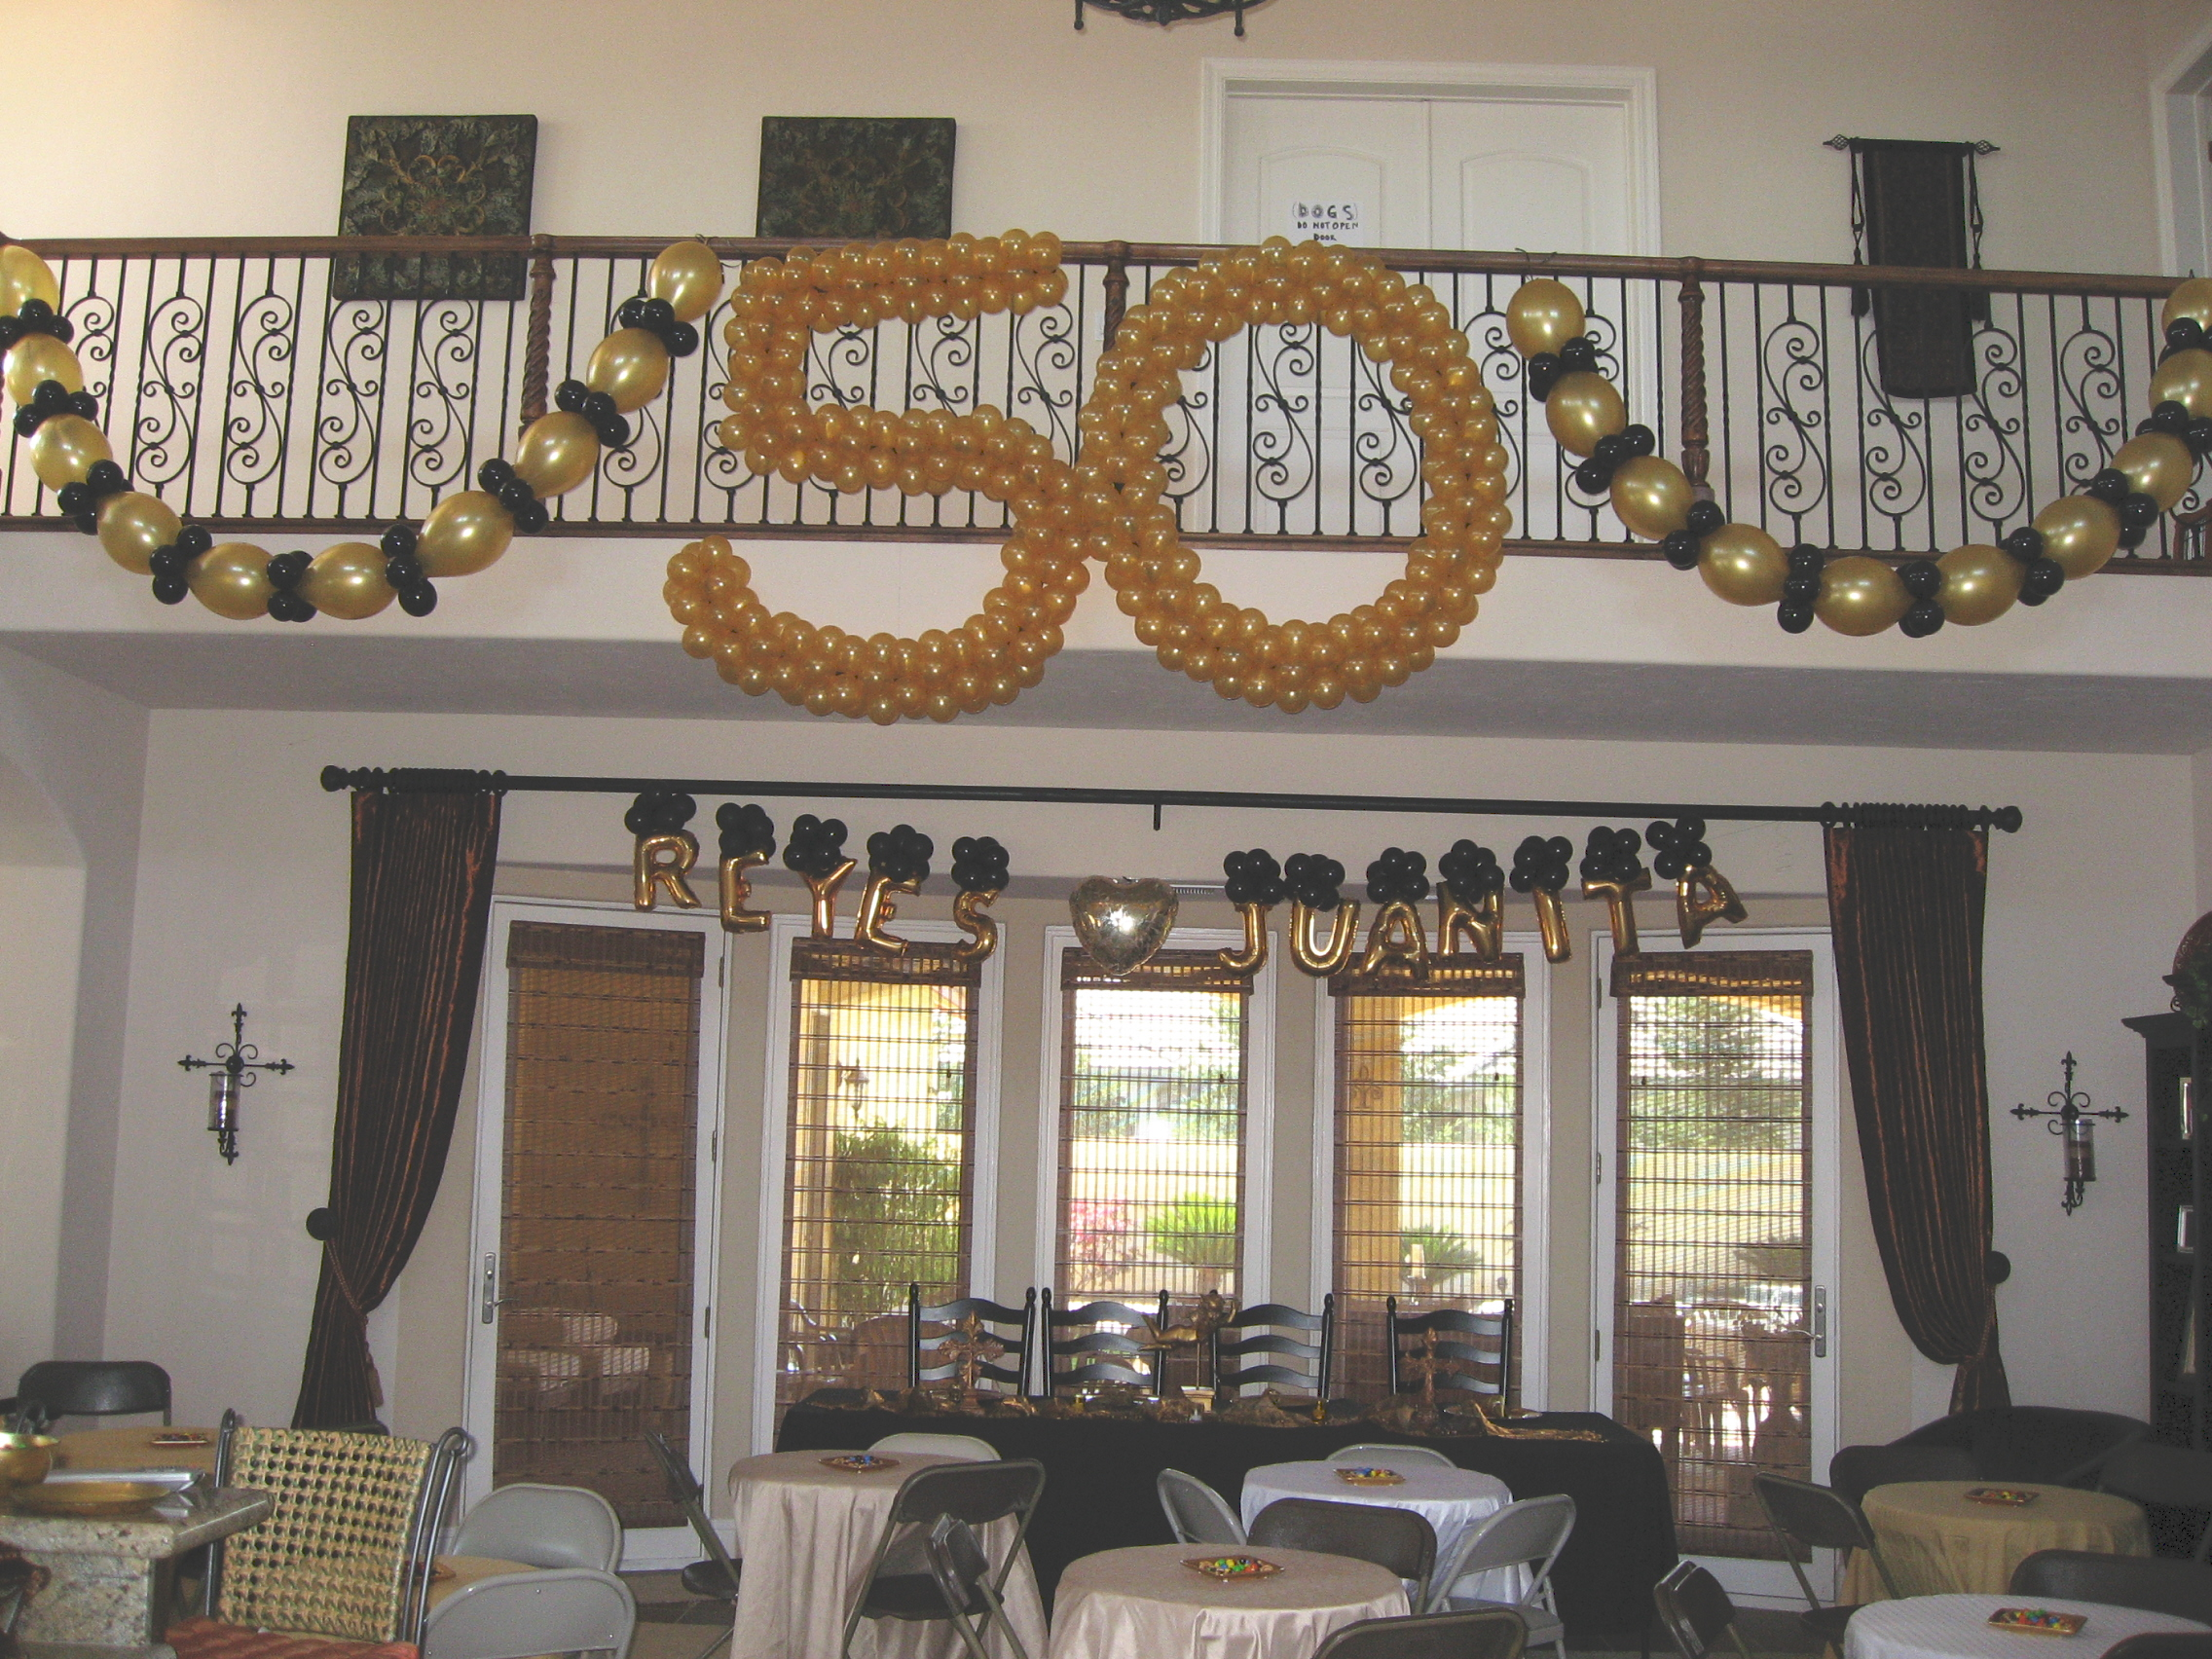 Anniversary party decorations party favors ideas for 50 wedding anniversary decoration ideas